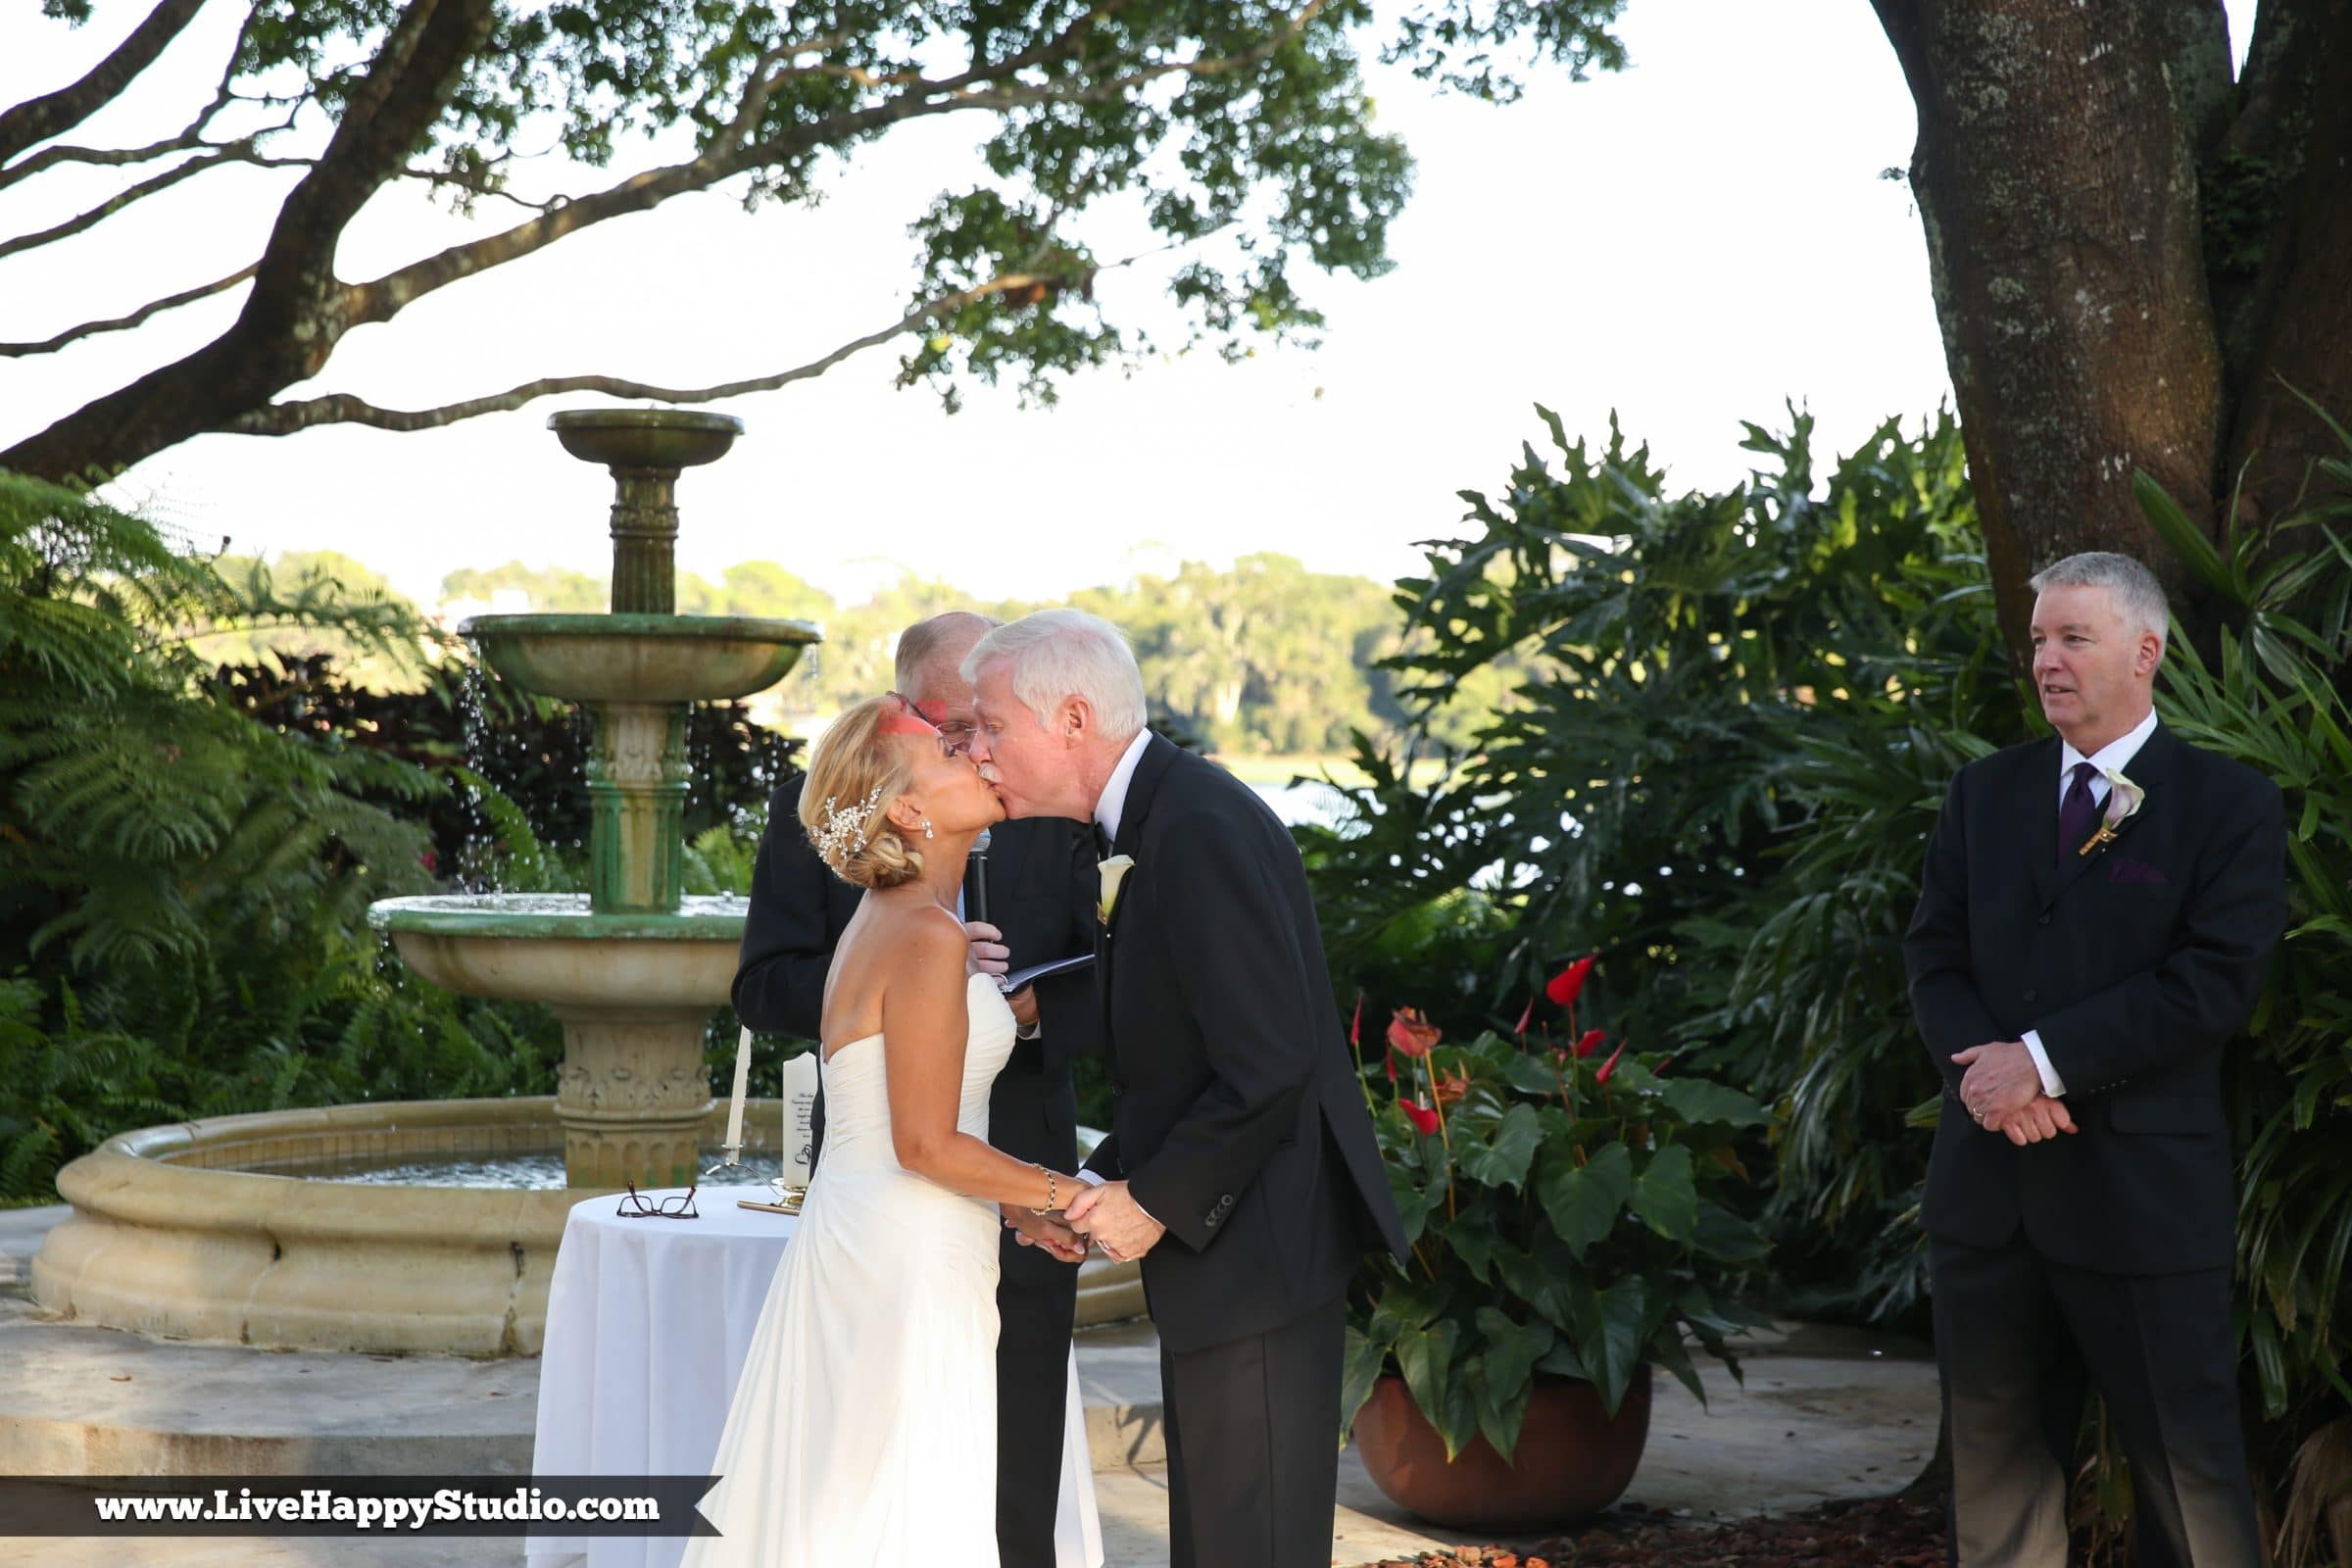 Bride and groom's first kiss under oak tree by rustic fountain